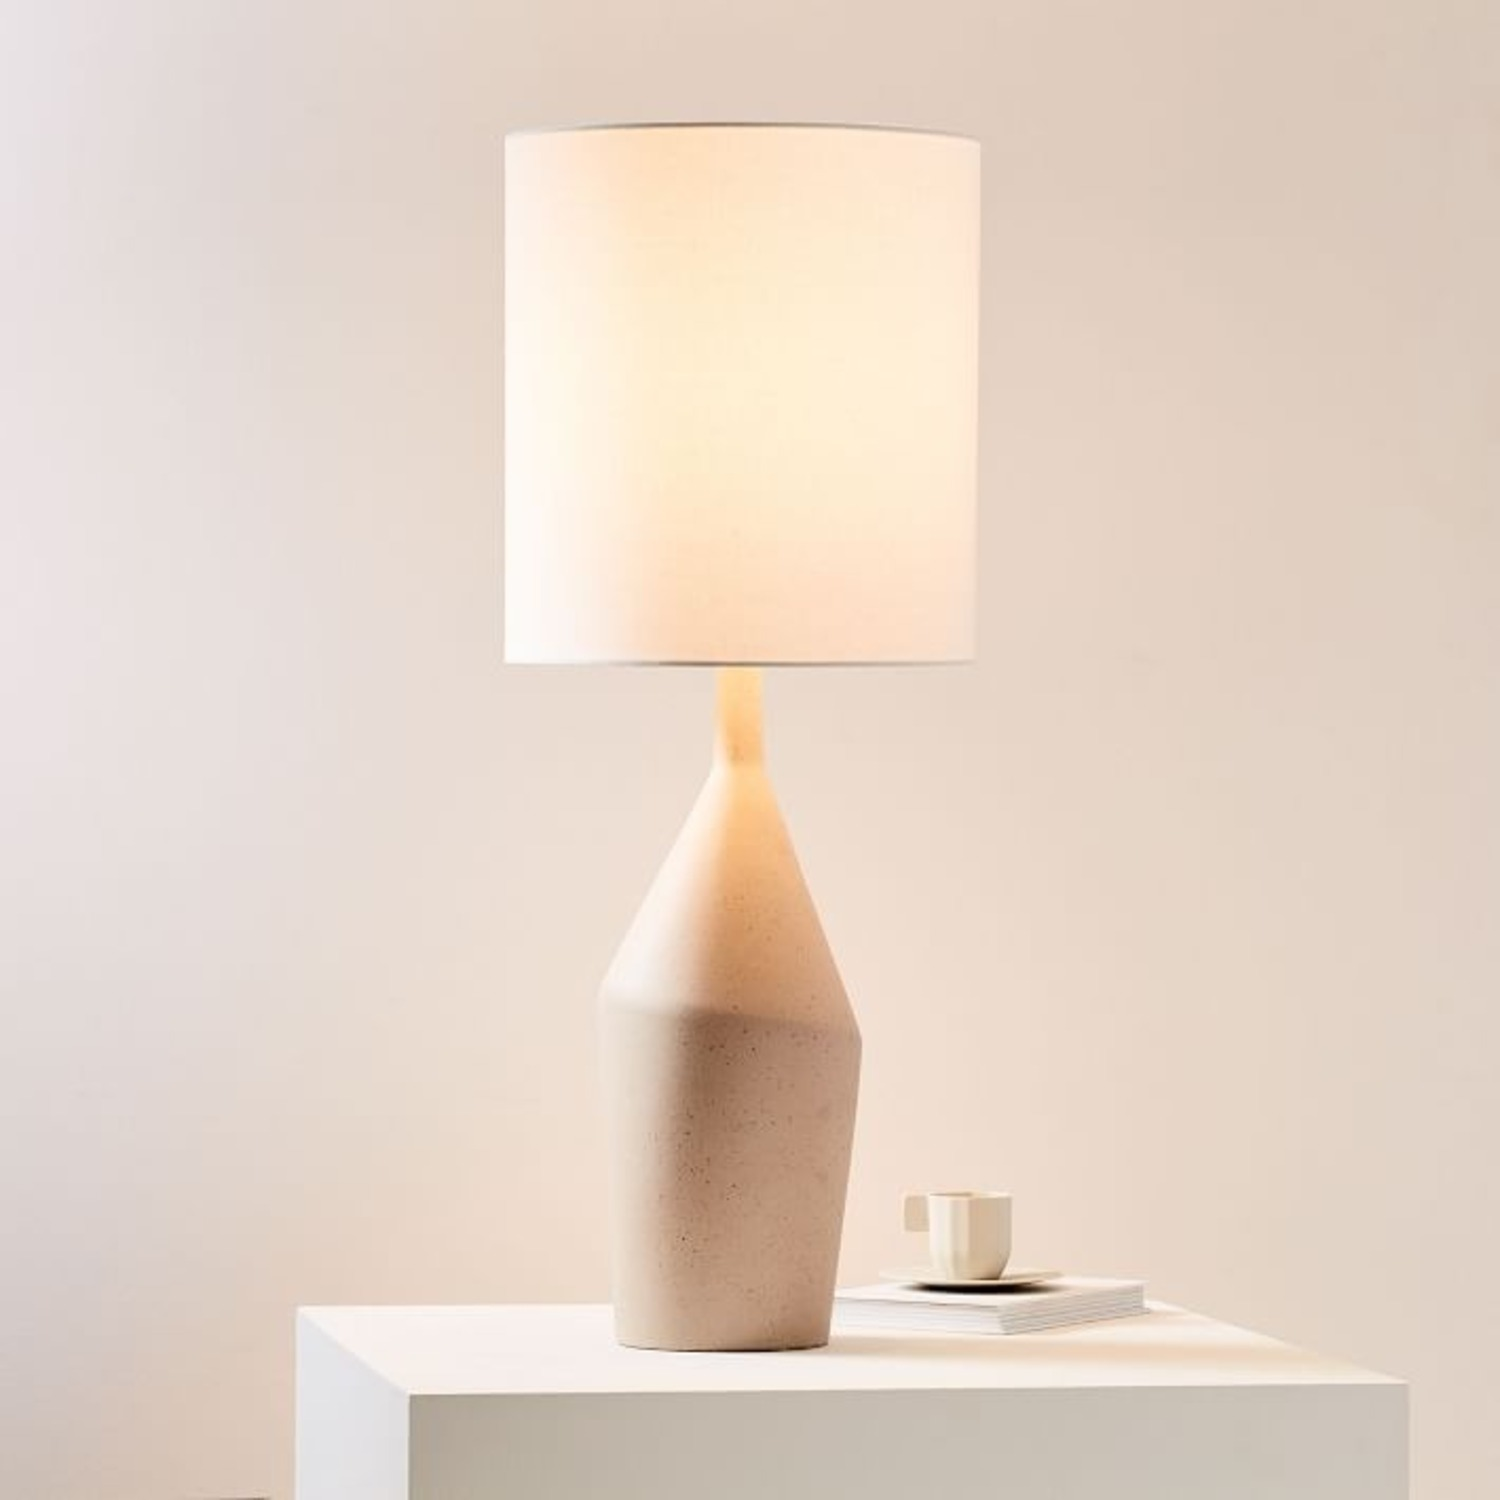 West Elm Asymmetry Ceramic Table Lamp - image-1